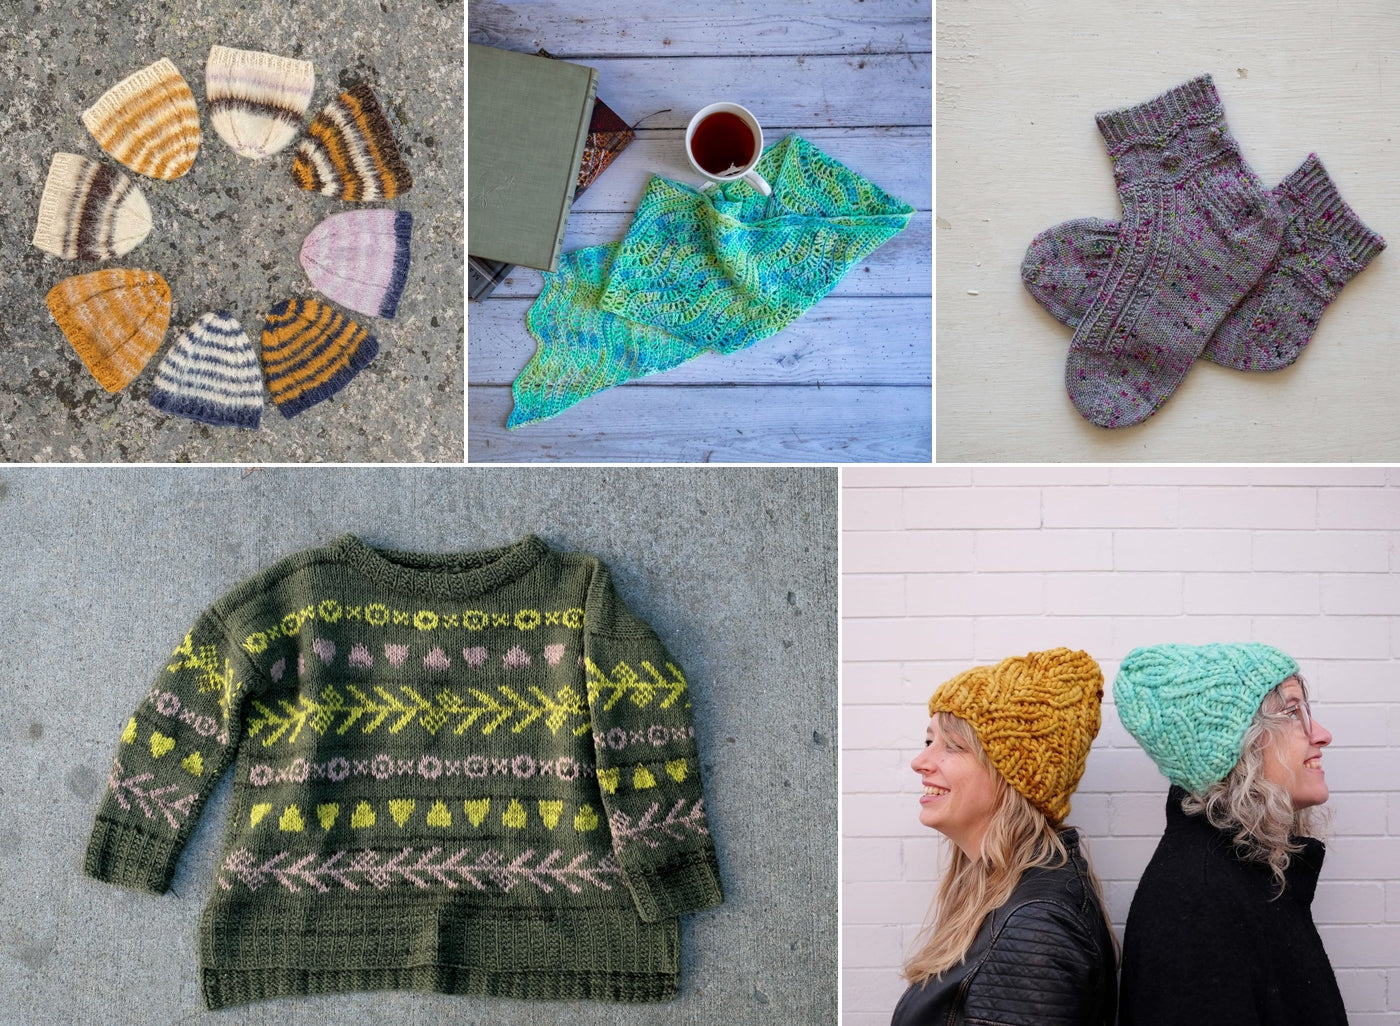 Blog Collage of 2019 Cobertor Hats all in a circle, Stormy Seas Scarf by Dorian Owen, Thunder and Lightening Socks, Vivarium Pullover pattern and Jaime and Amber wearing Neighborhood Holiday Hats.